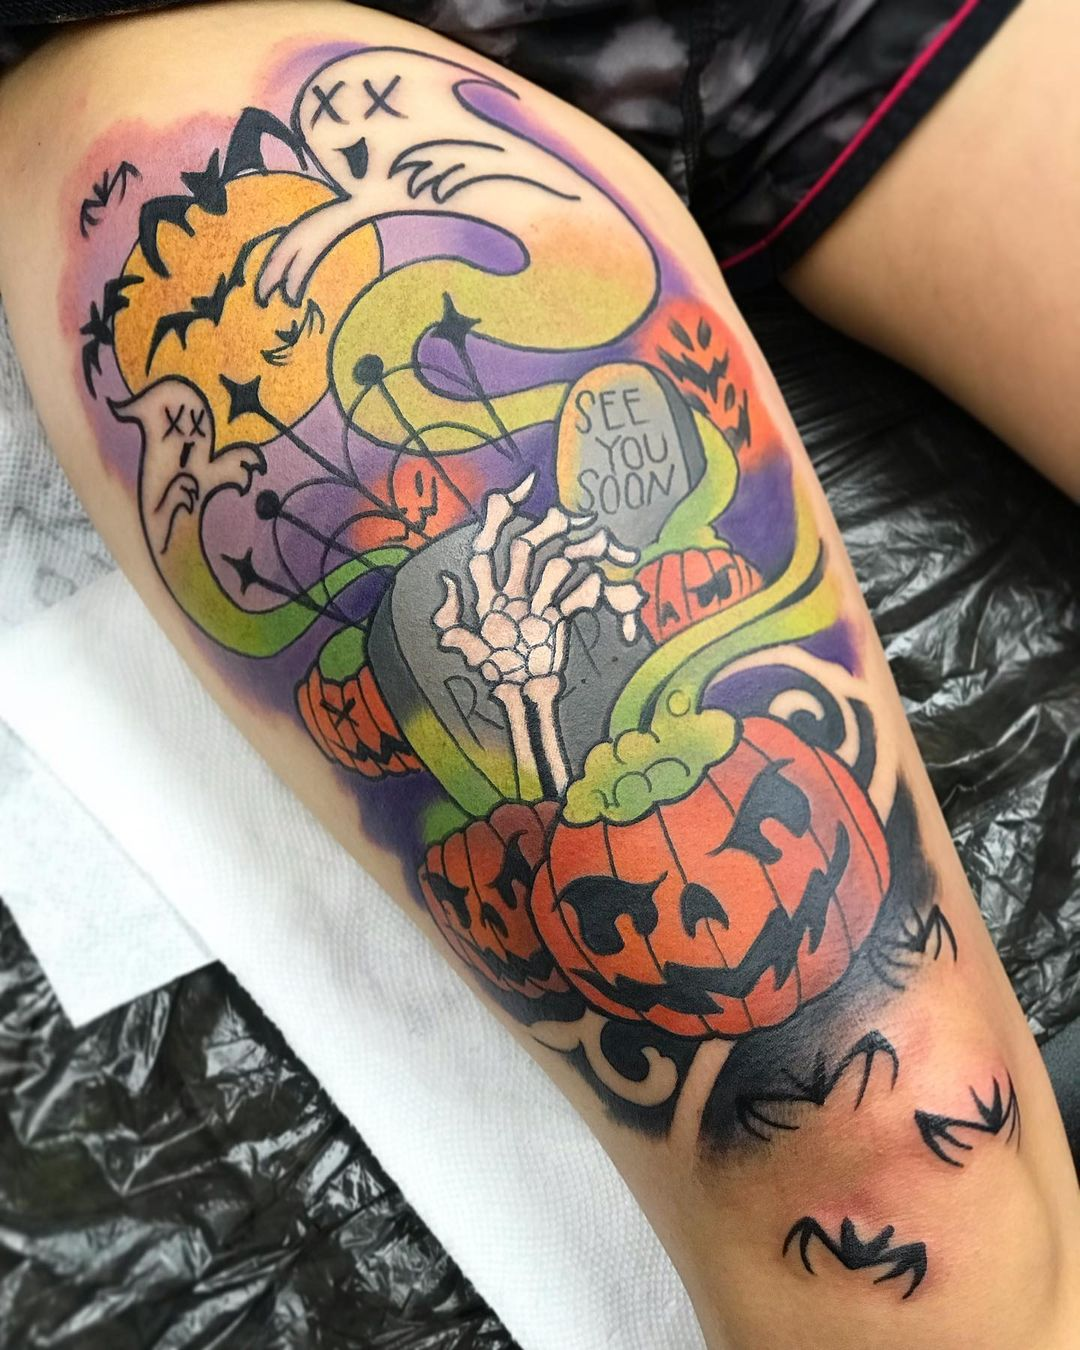 Great Halloween themed tattoo especially if it's your birthday that day!